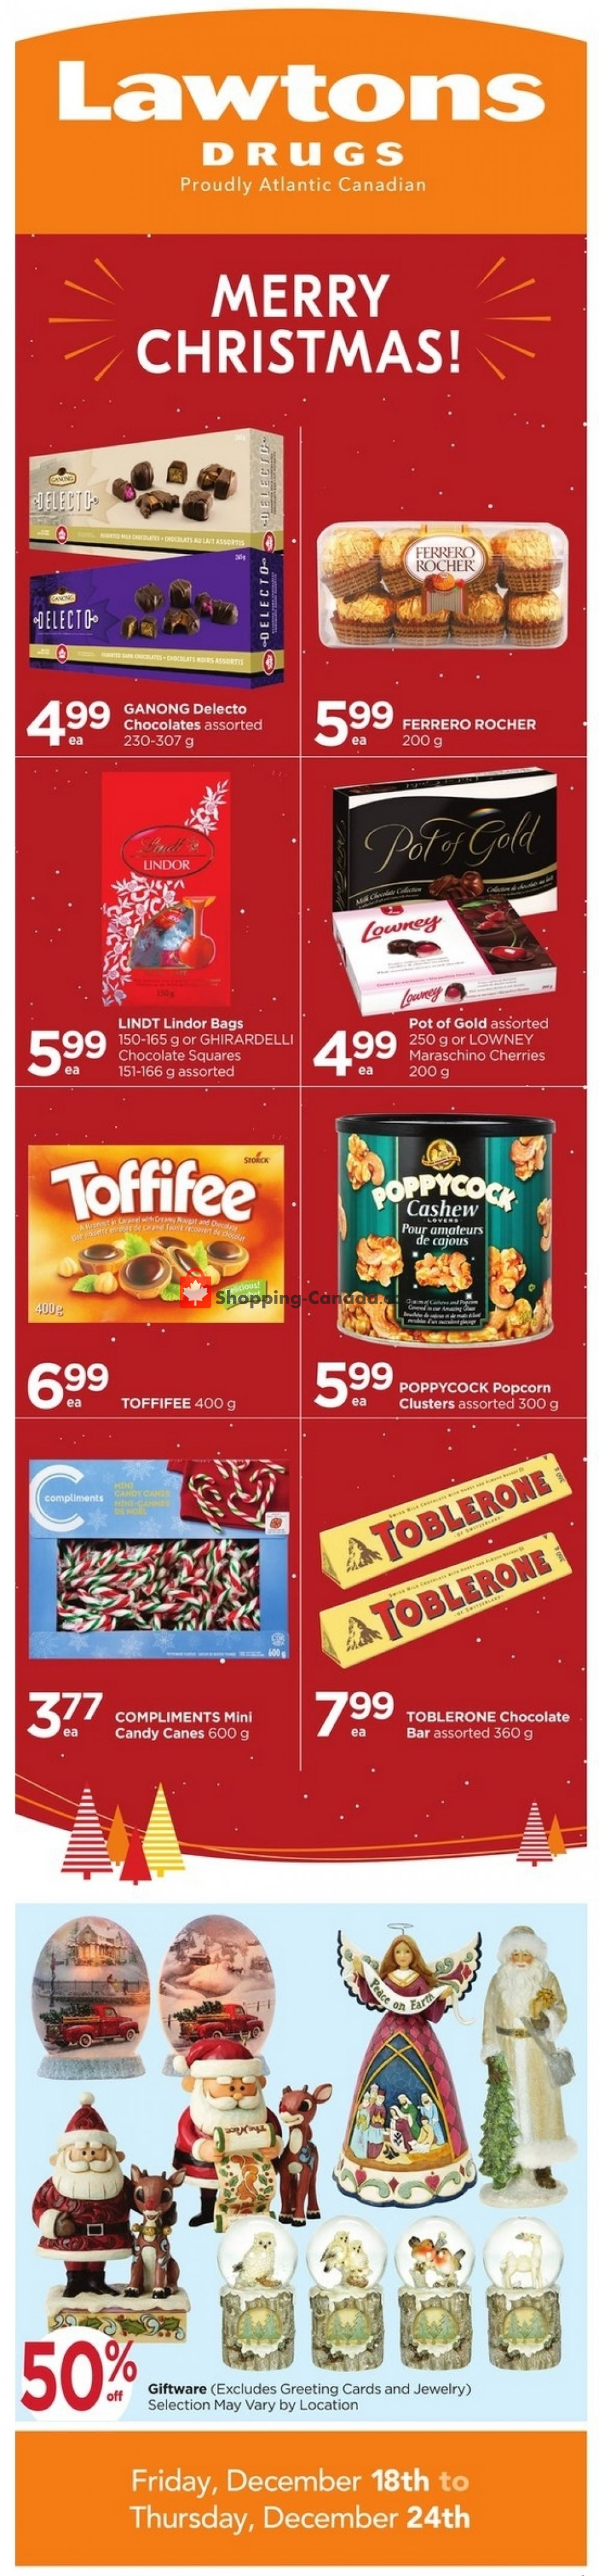 Flyer Lawtons Drugs Canada - from Friday December 18, 2020 to Thursday December 24, 2020